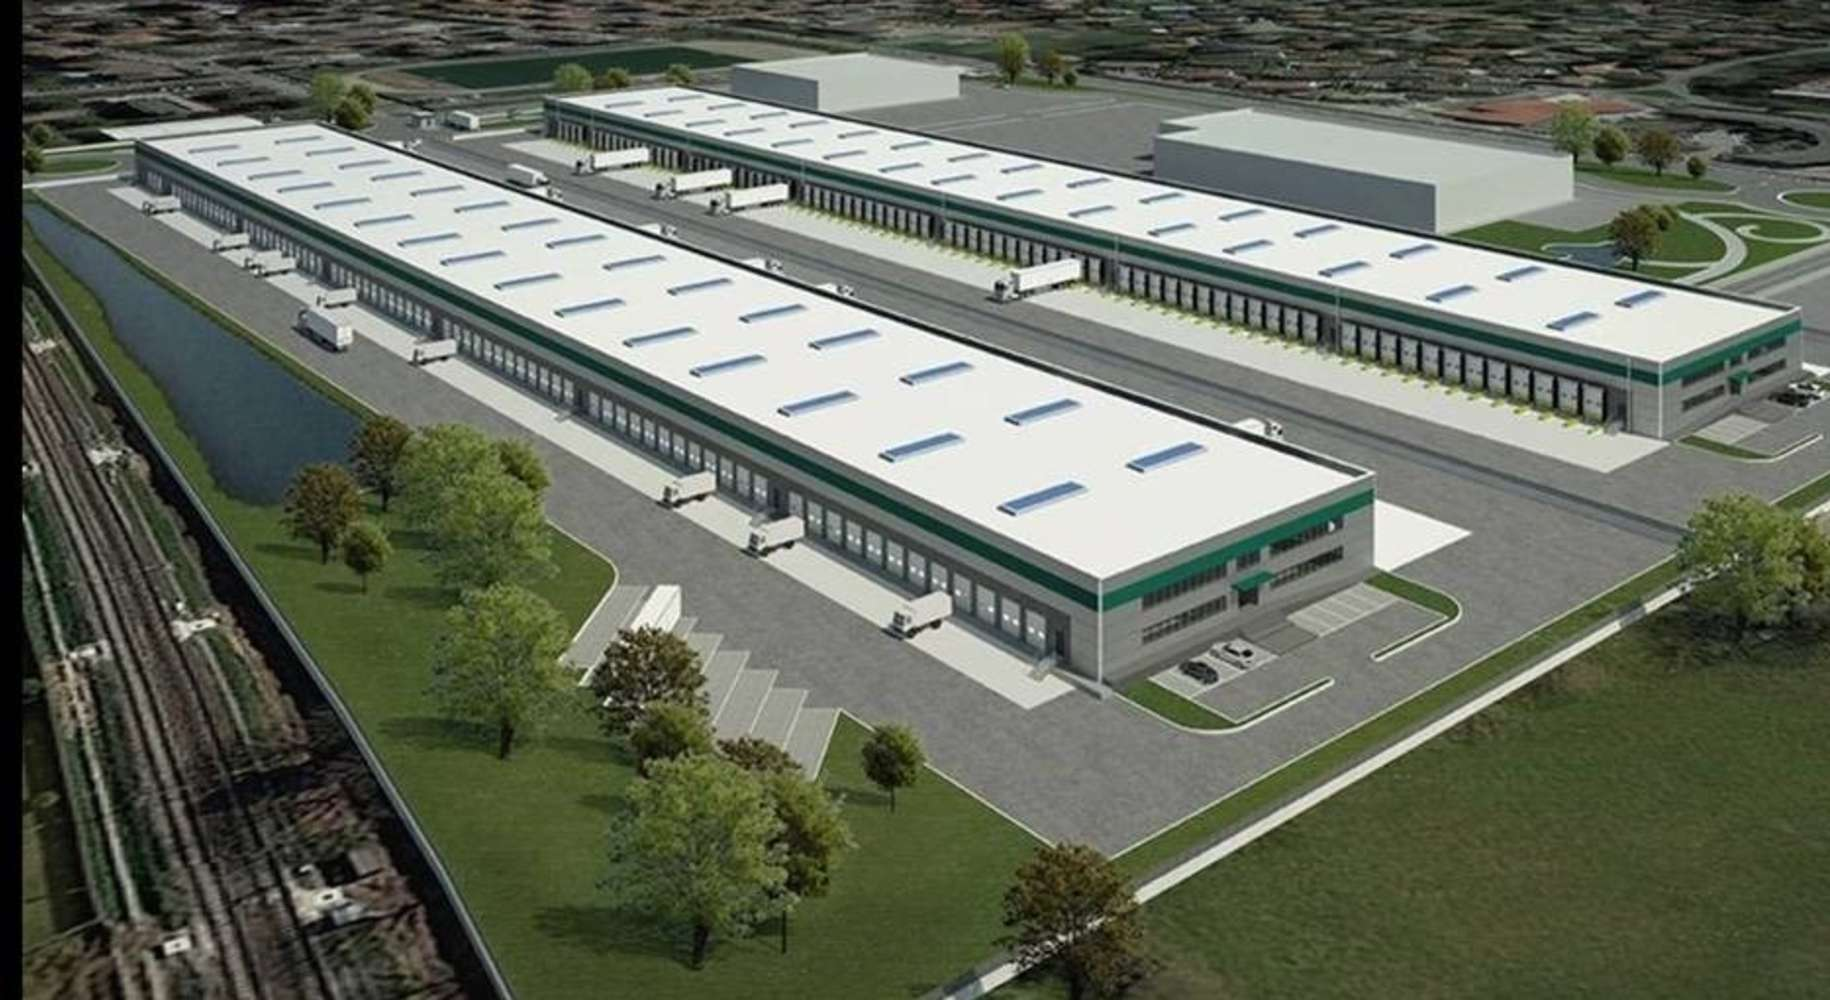 Magazzini industriali e logistici Cassina de pecchi, 20060 - Area Logistica Cassina de Pecchi - 10878331